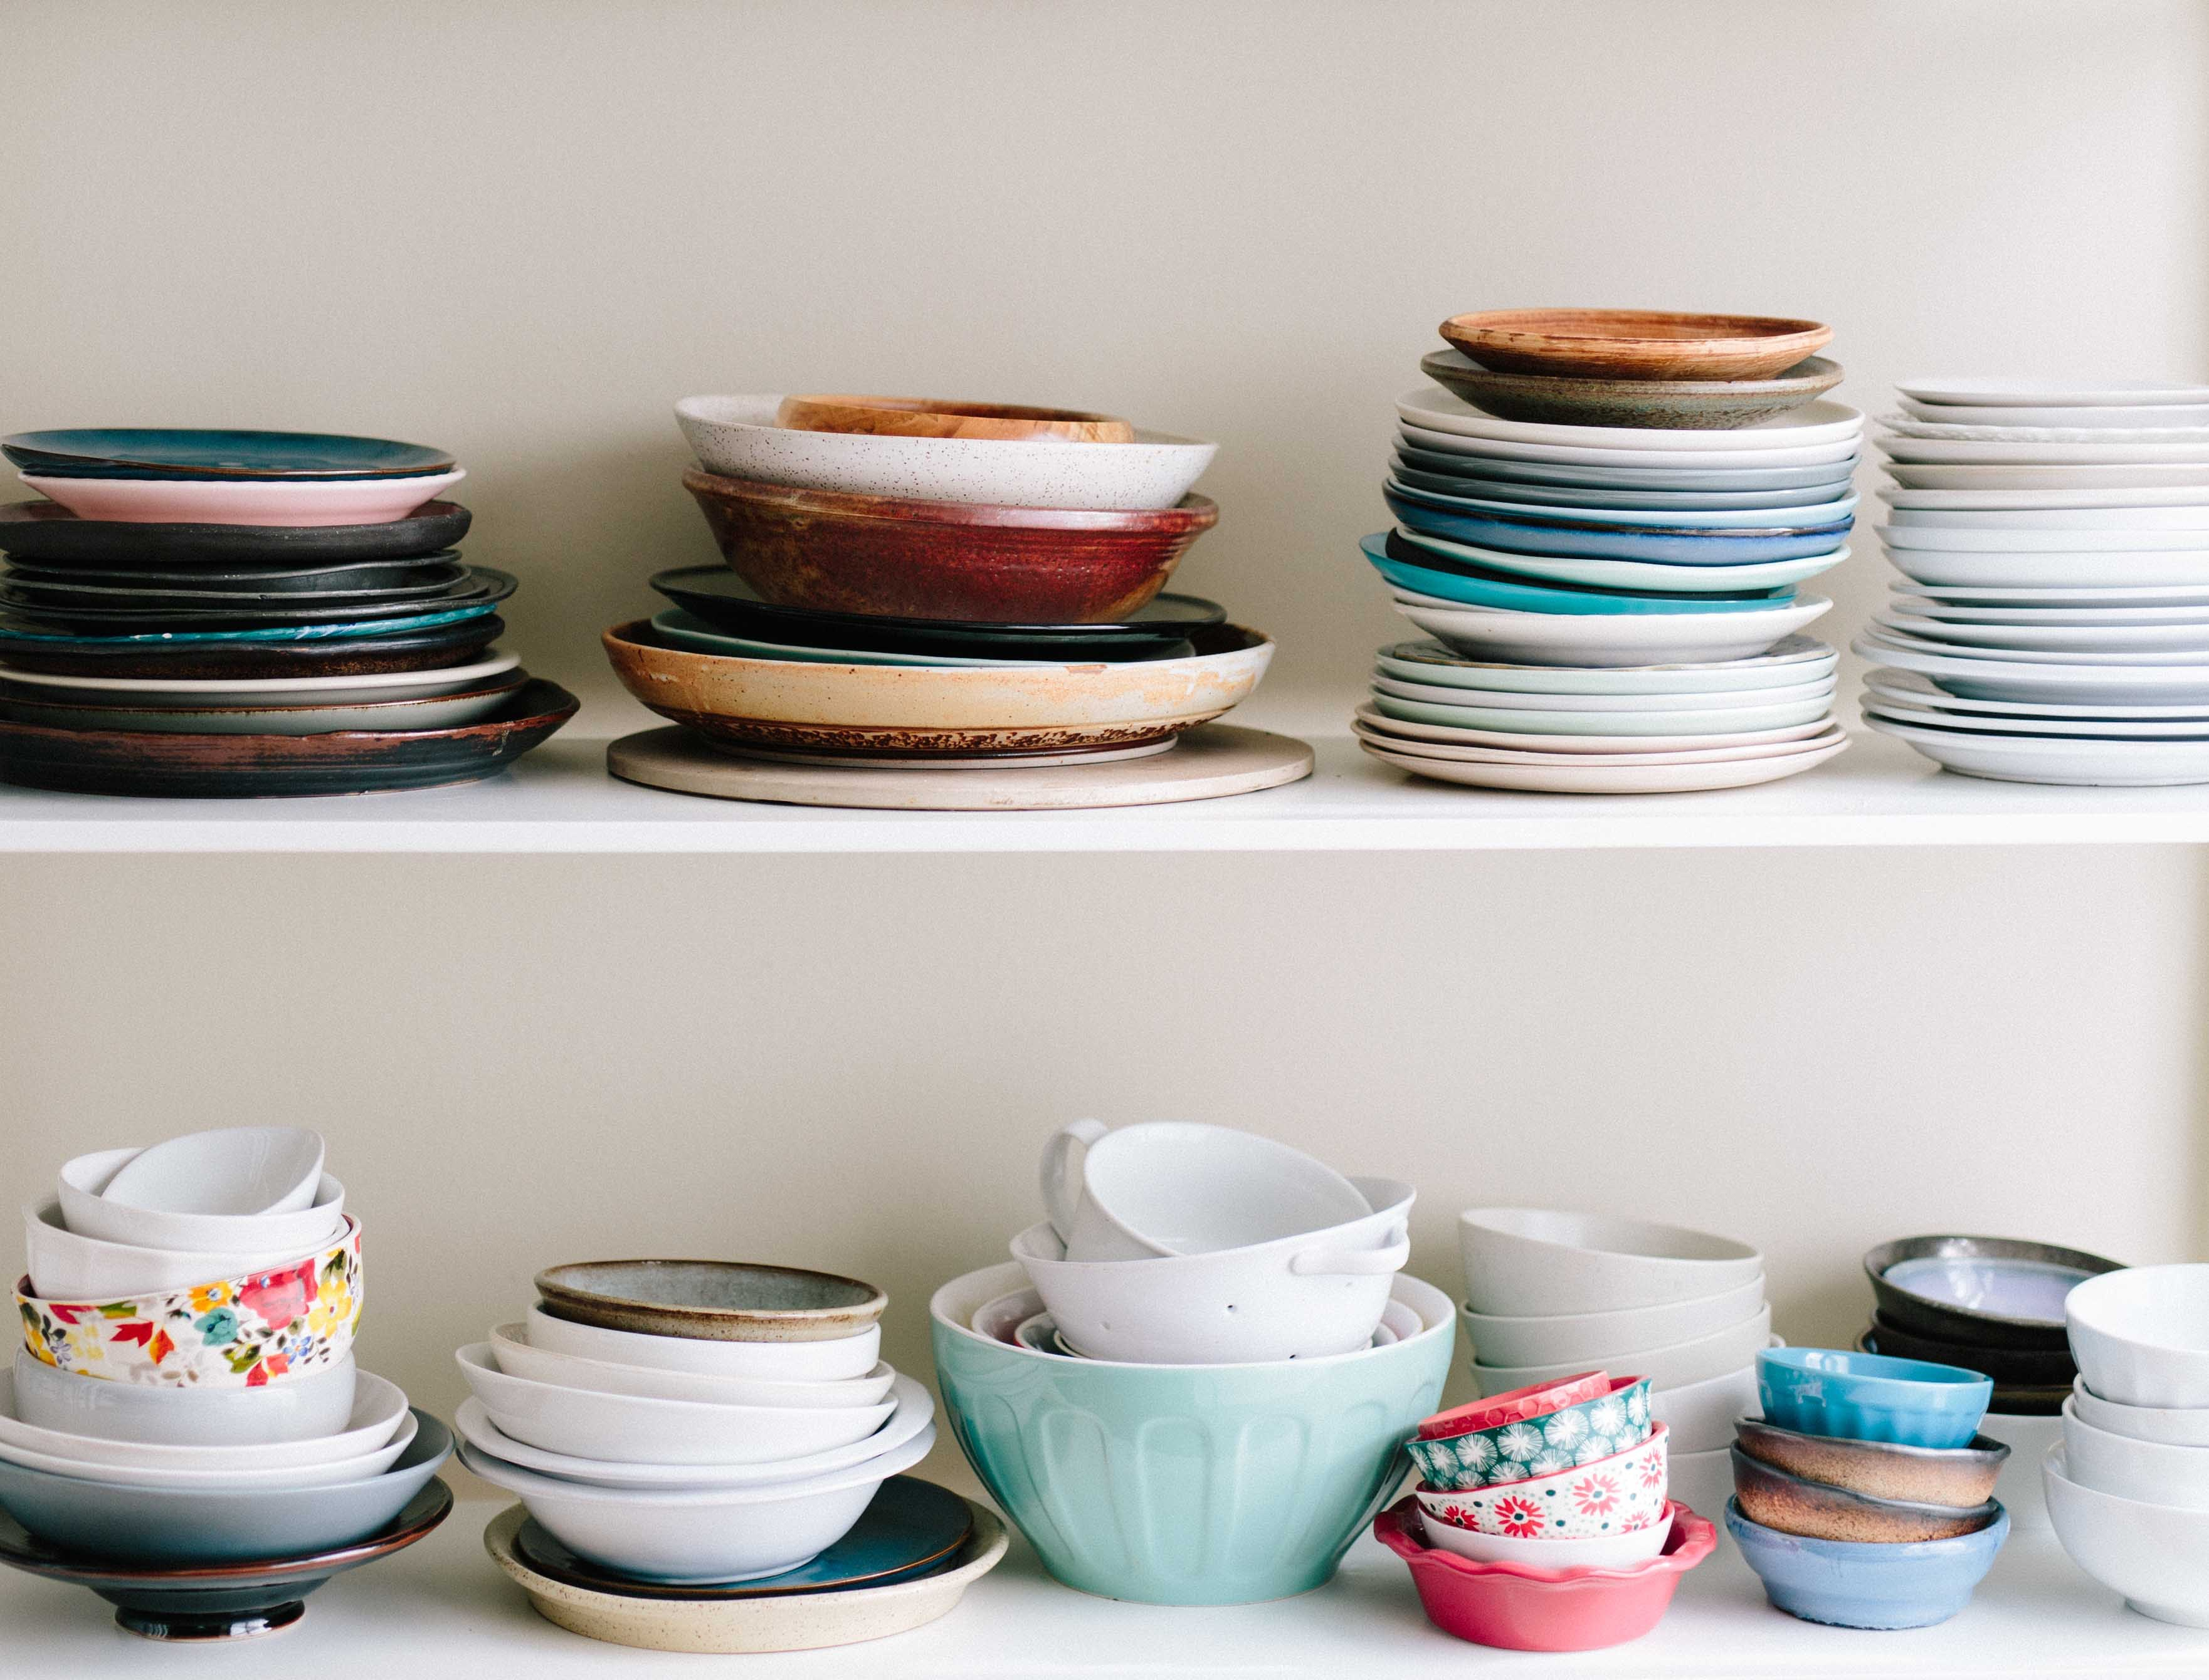 stacked porcelain plates